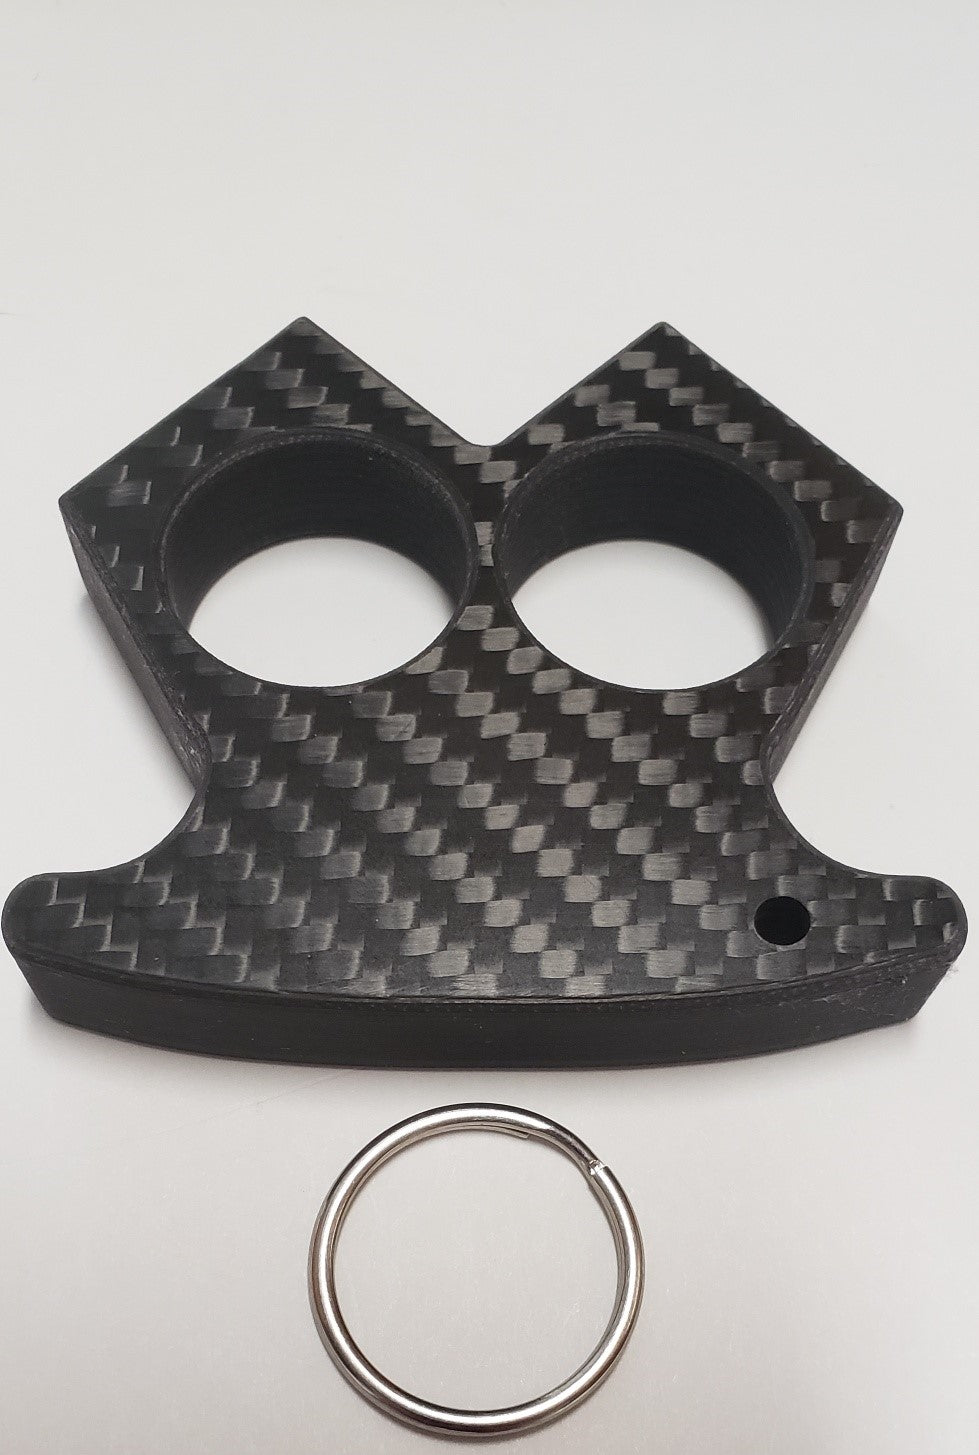 THE EQUALIZER New two finger carbon fiber knuckle duster  (limited stock)